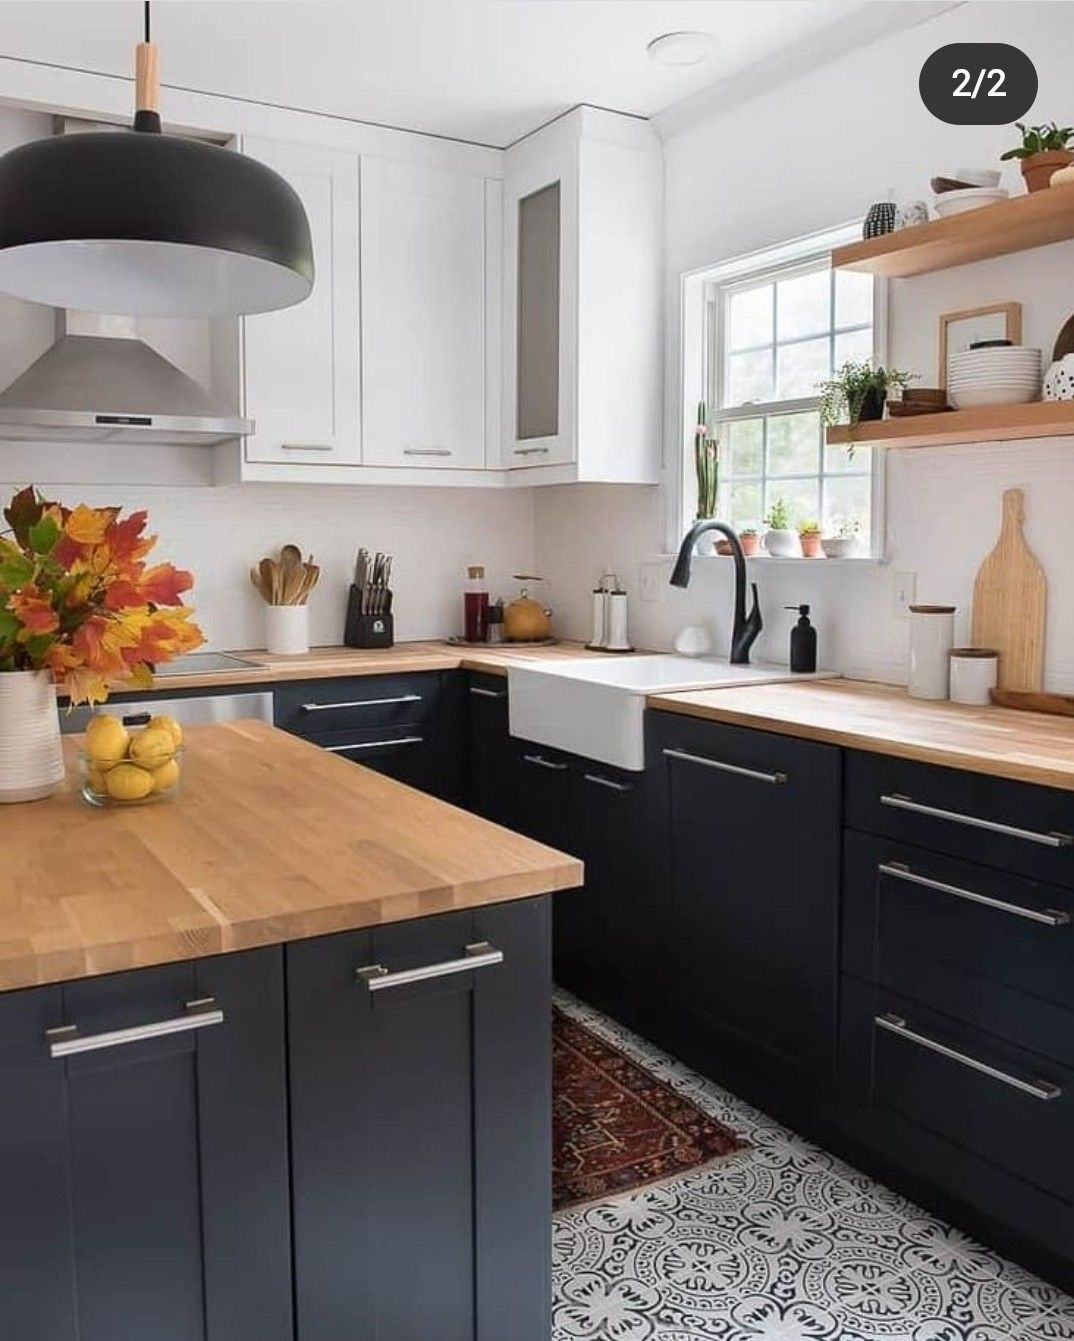 Pin by Kelly Cogdill on Canteen in 2020 Modern kitchen